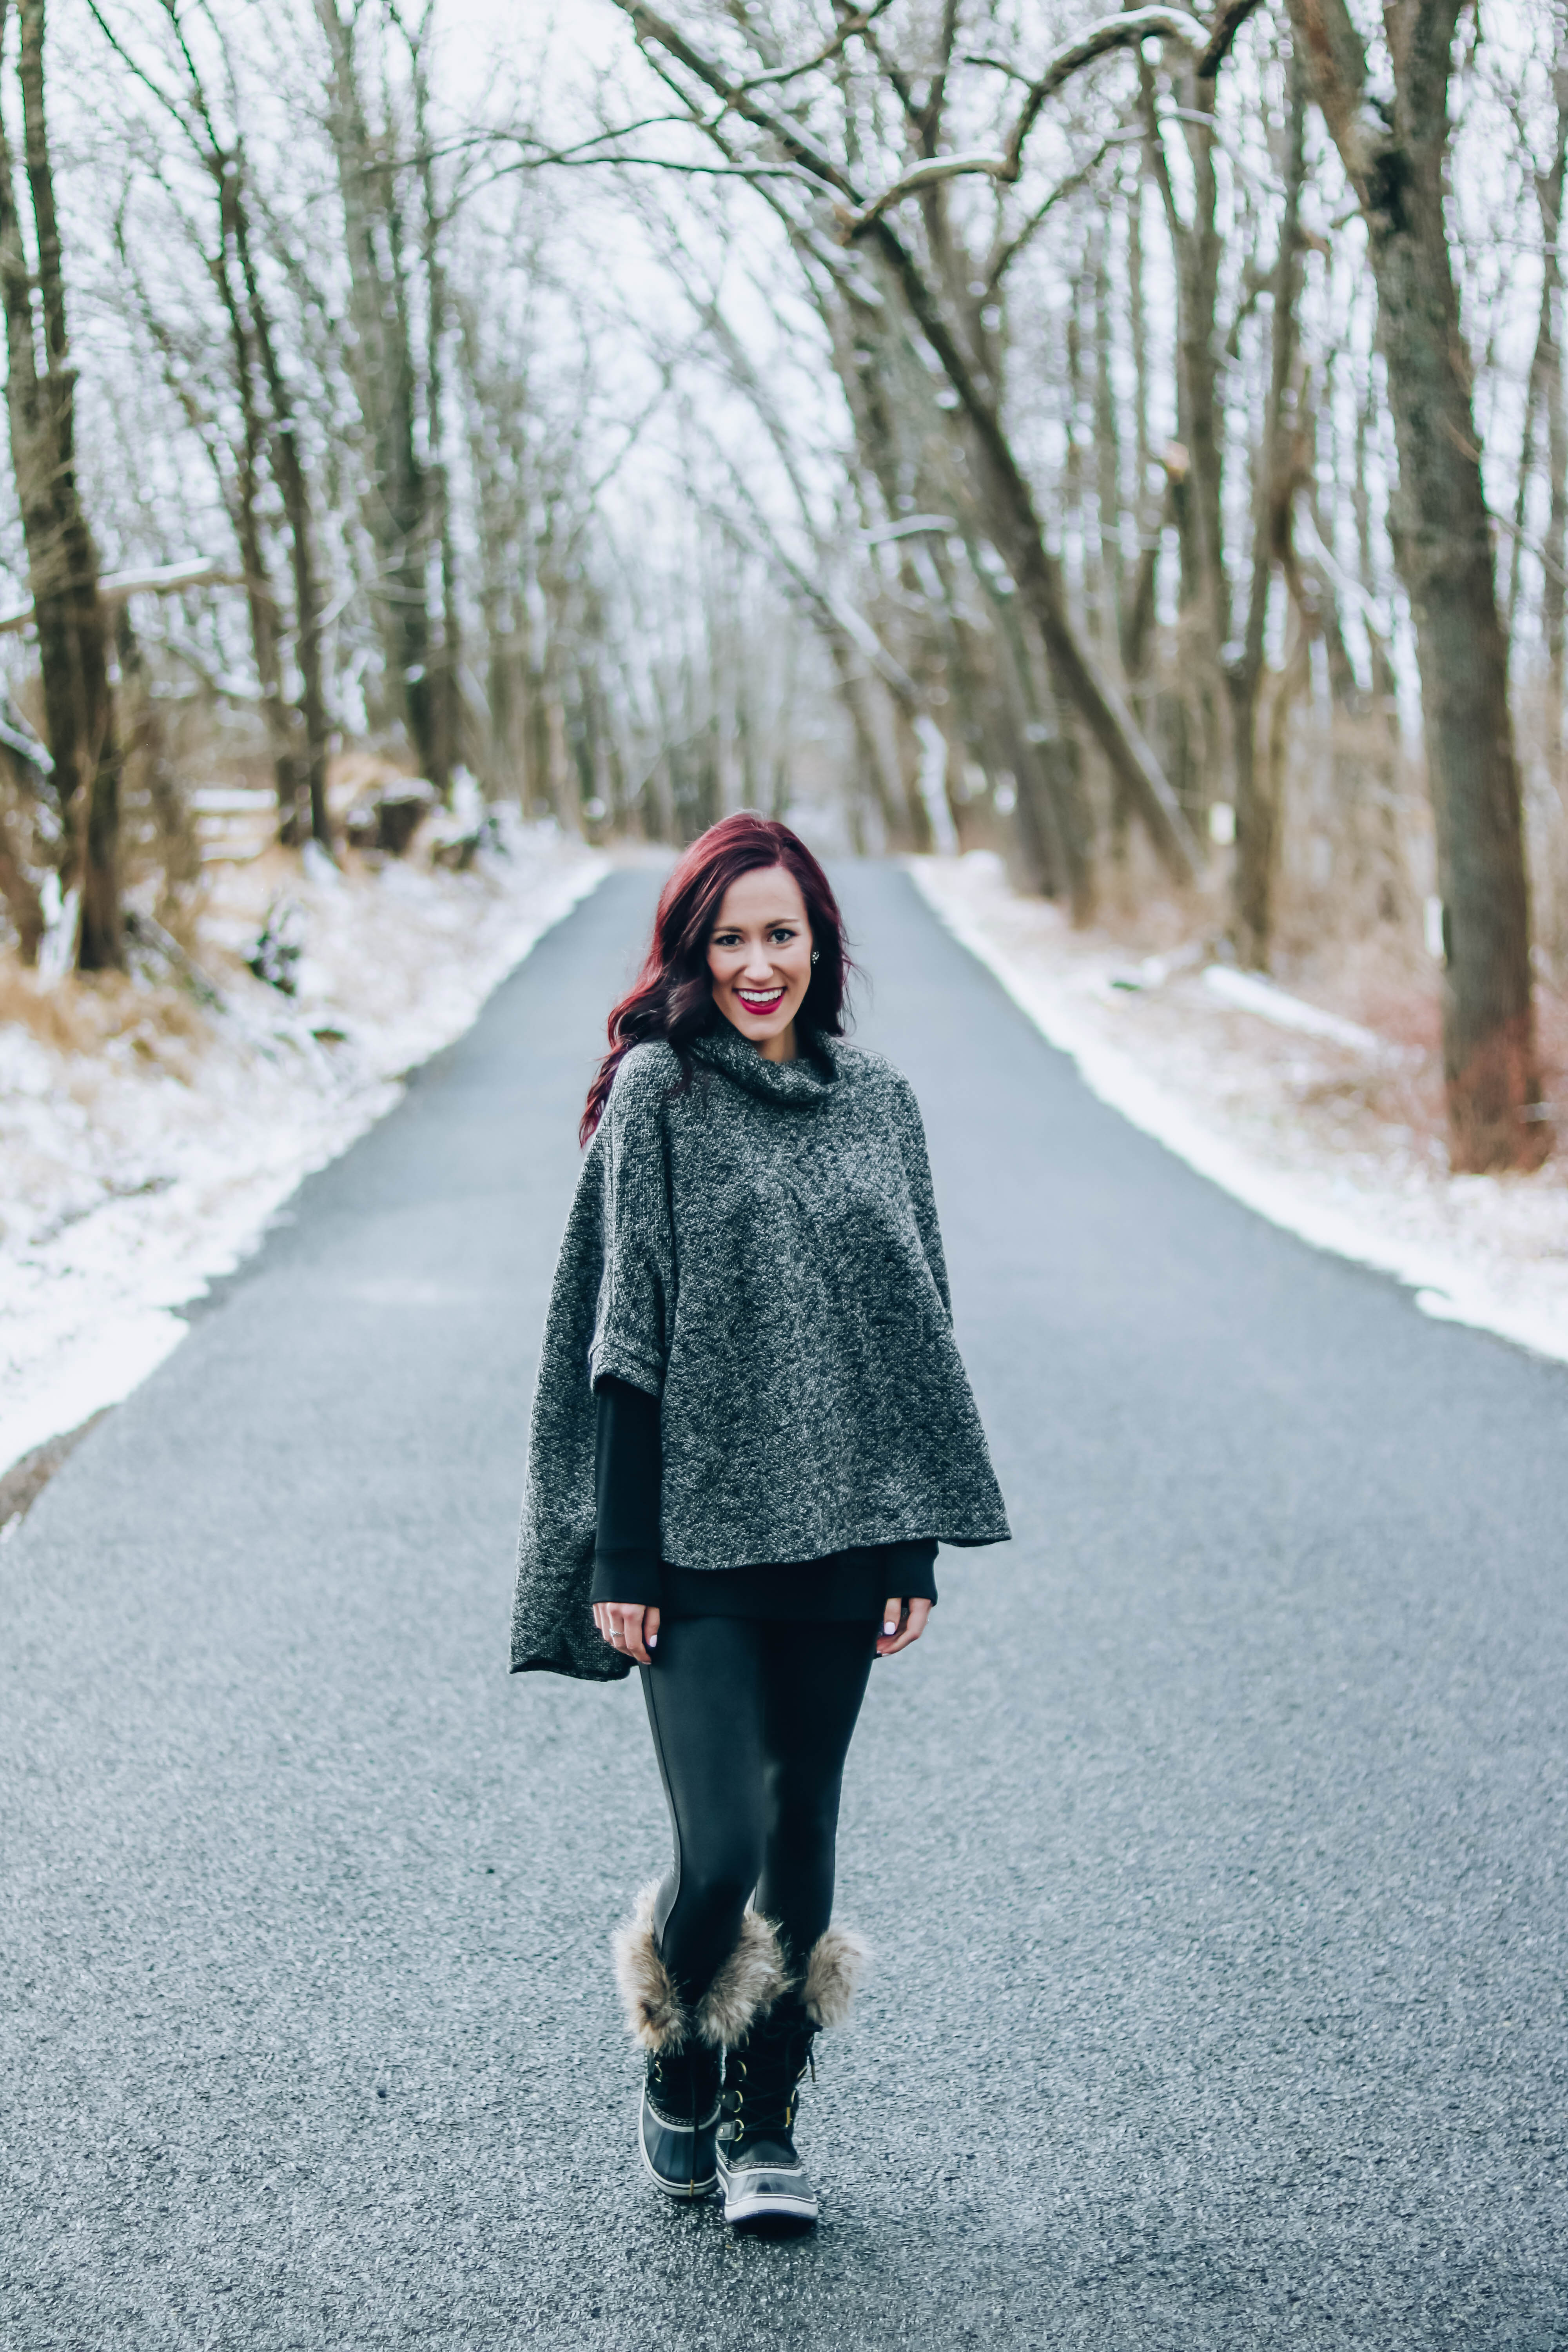 Snow Day Chic + some Life Updates